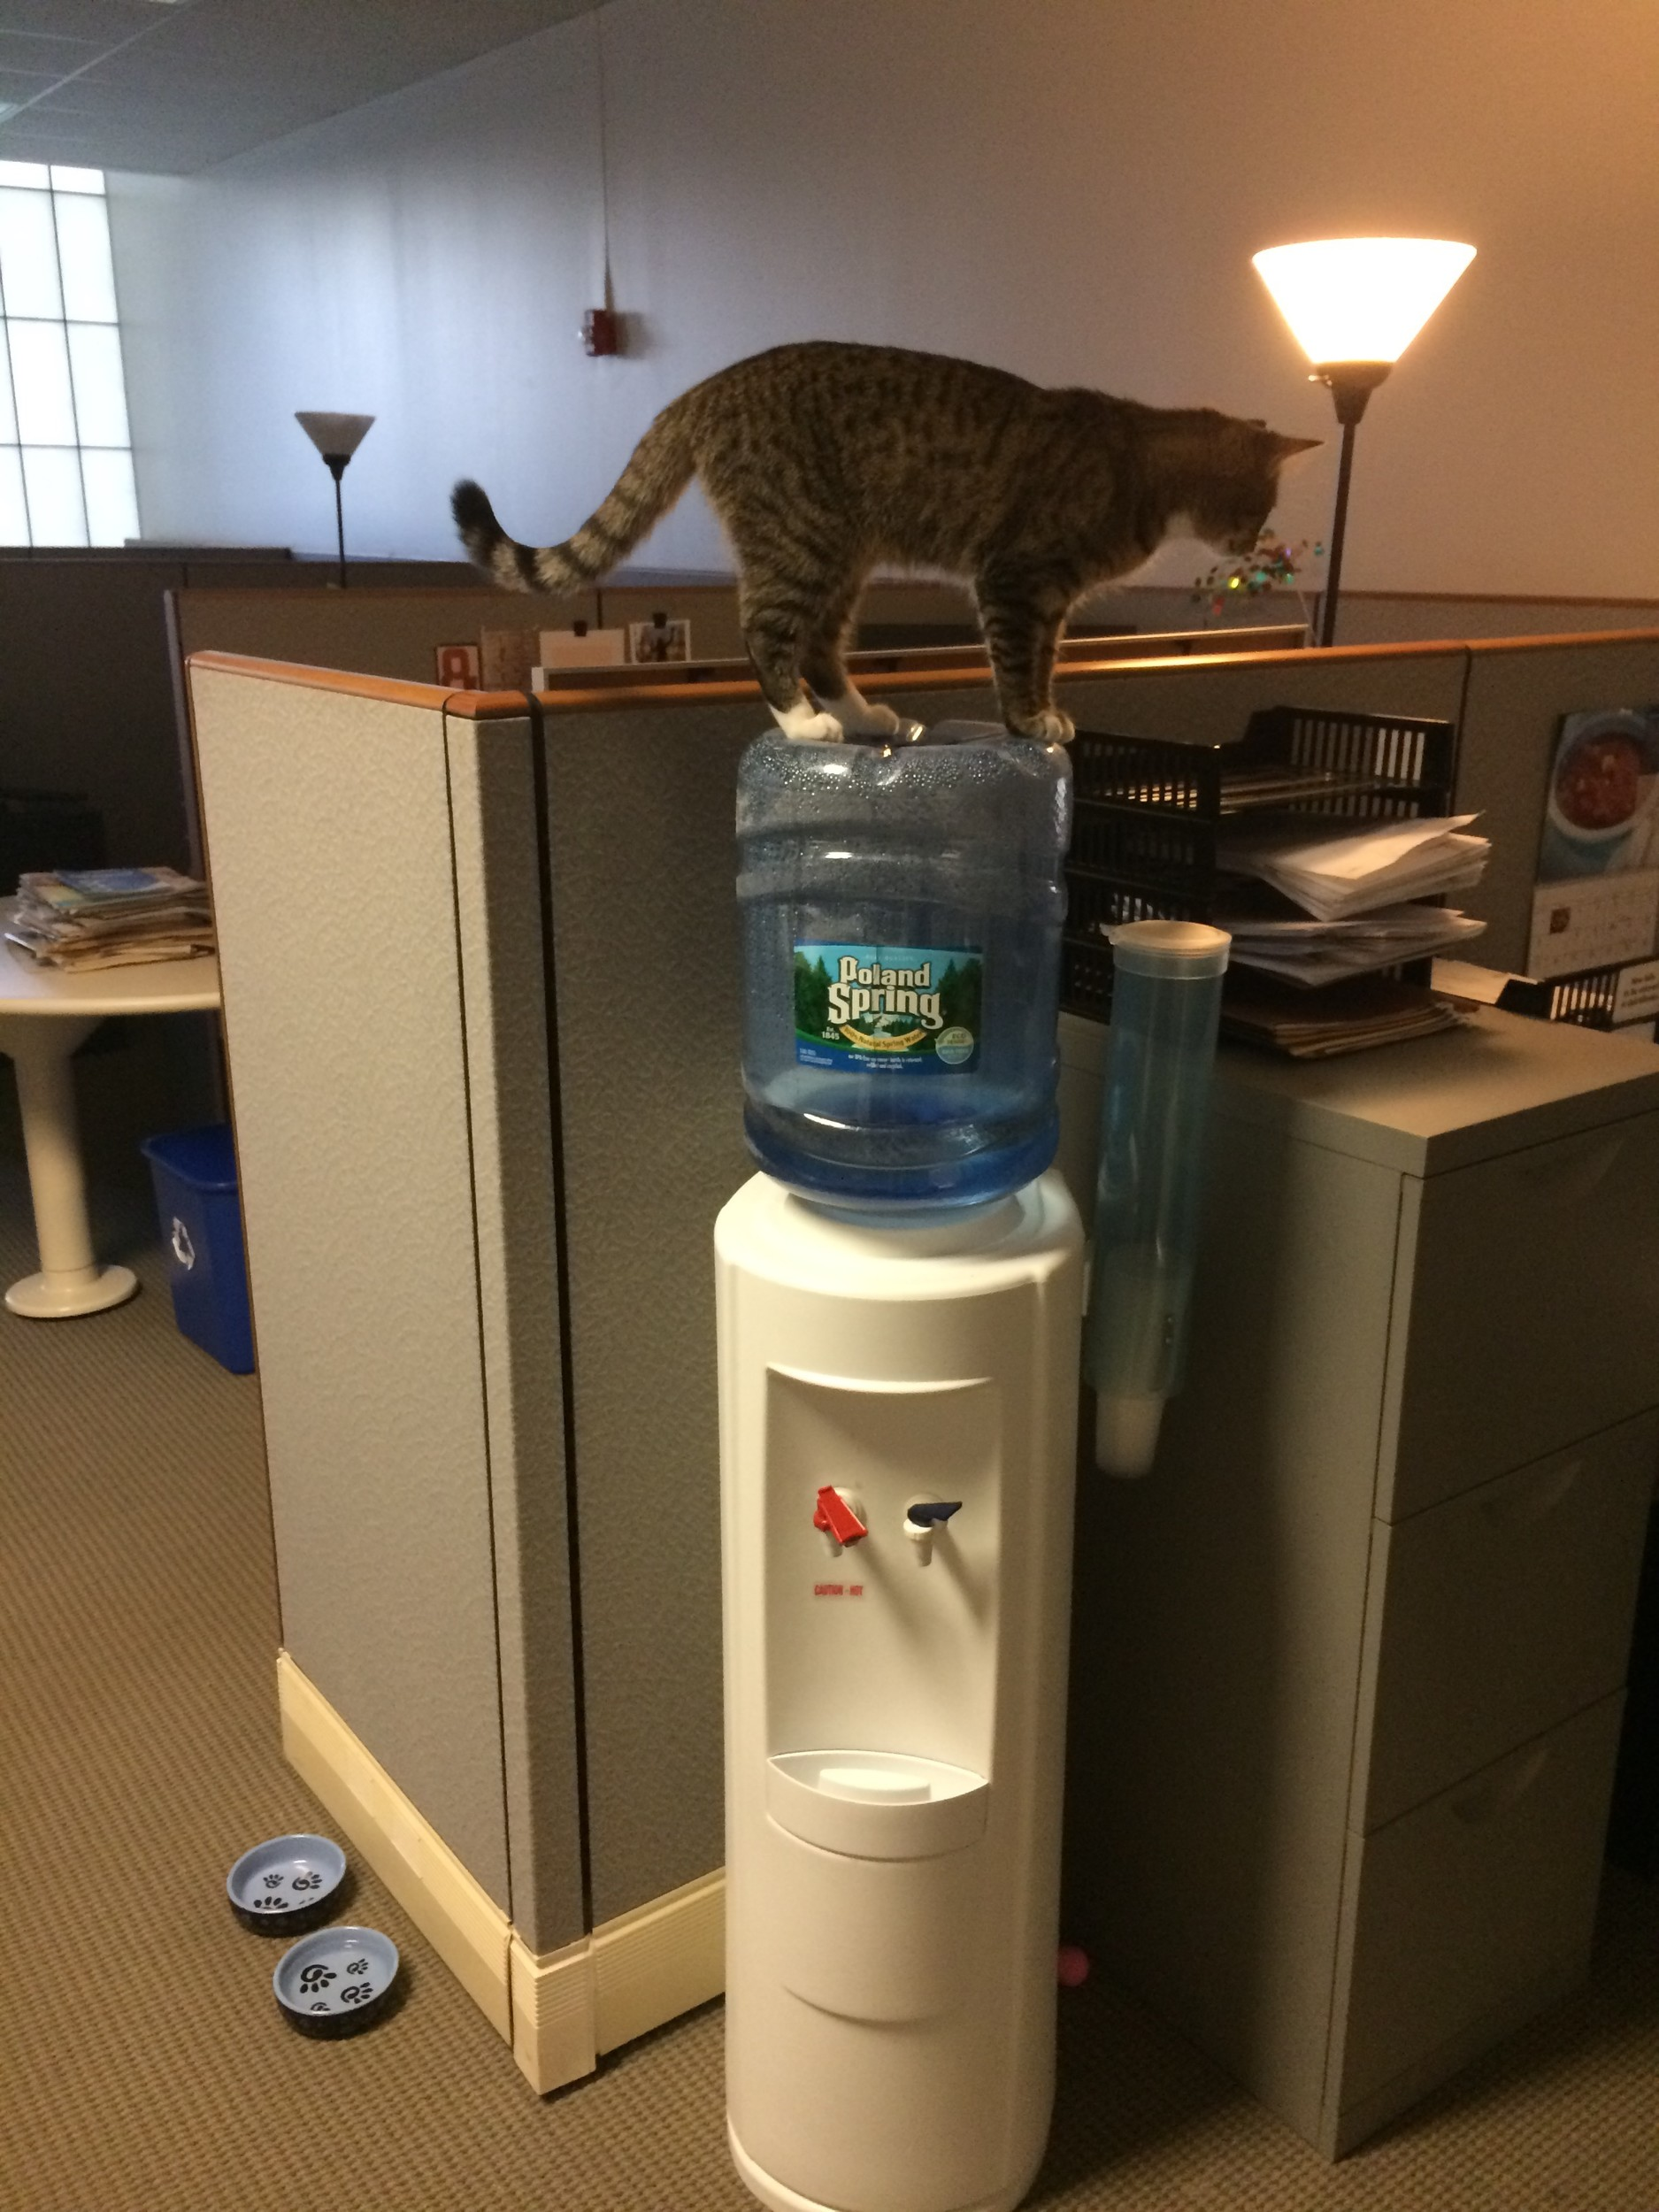 Hanging out at the water cooler waiting for company. . .